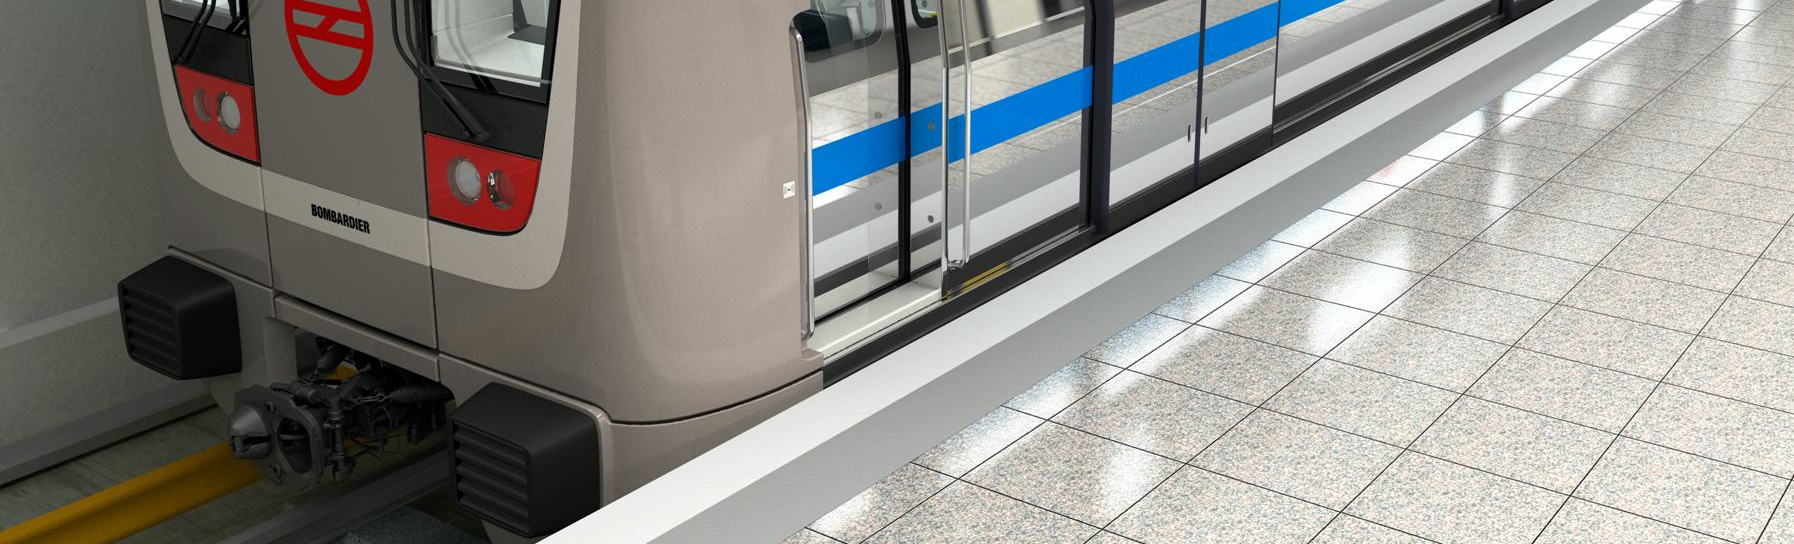 Centralized Lubrication System for DMRC Tracks